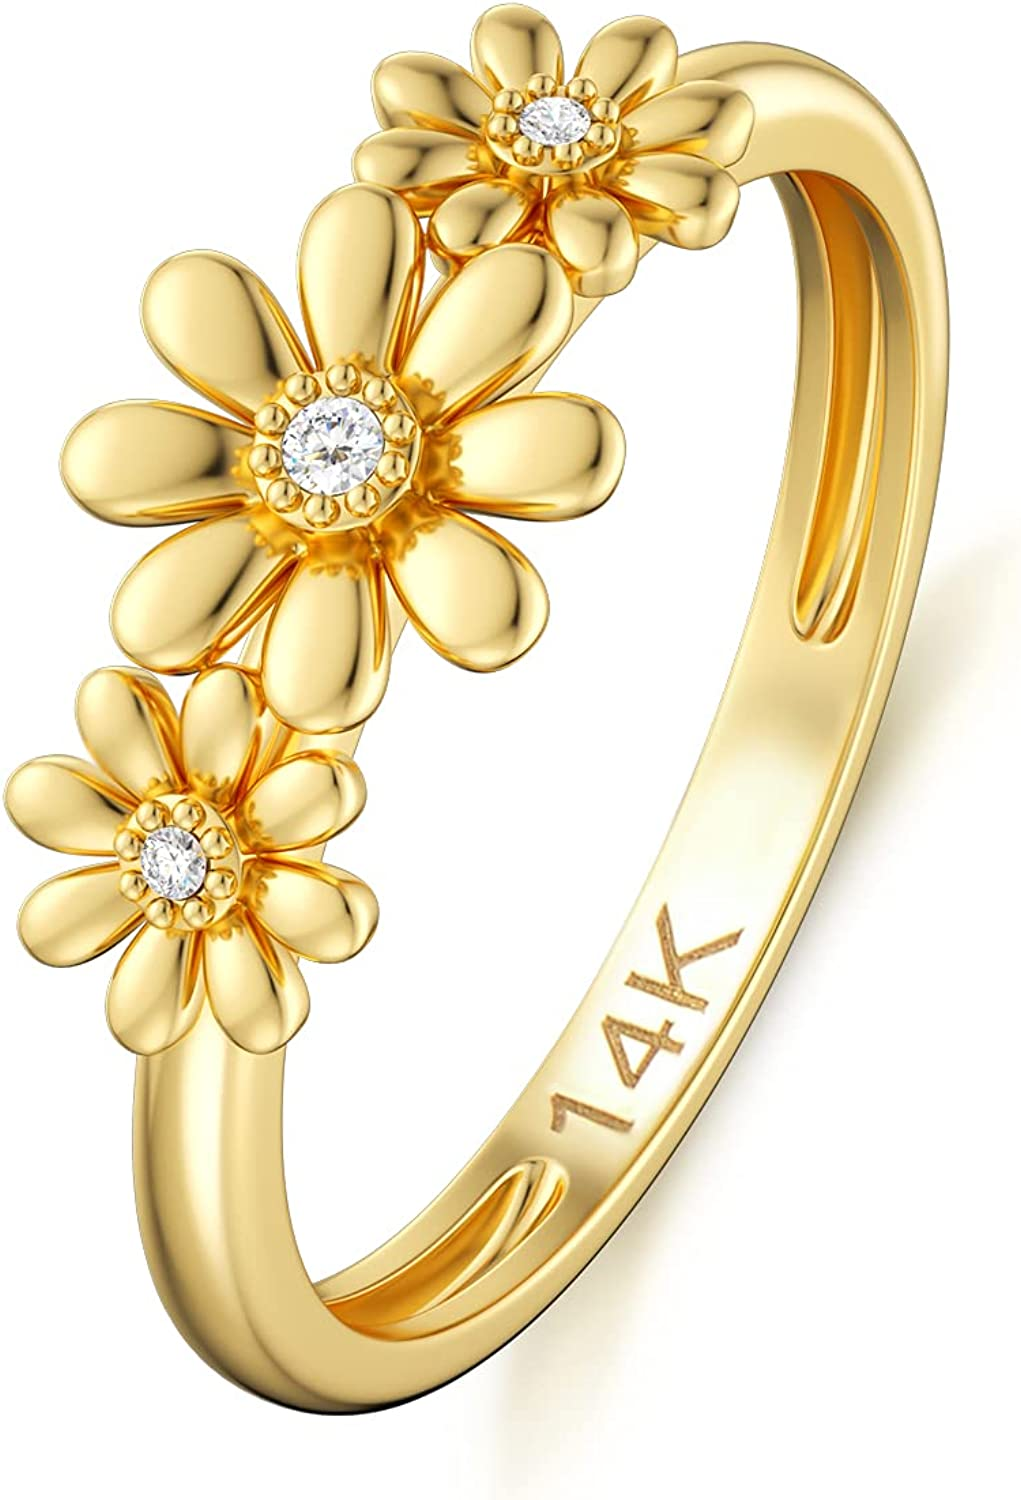 SISGEM 14K Real Gold Nature Max 56% OFF Diamond Ring Yellow Ranking TOP9 Daisy Women for